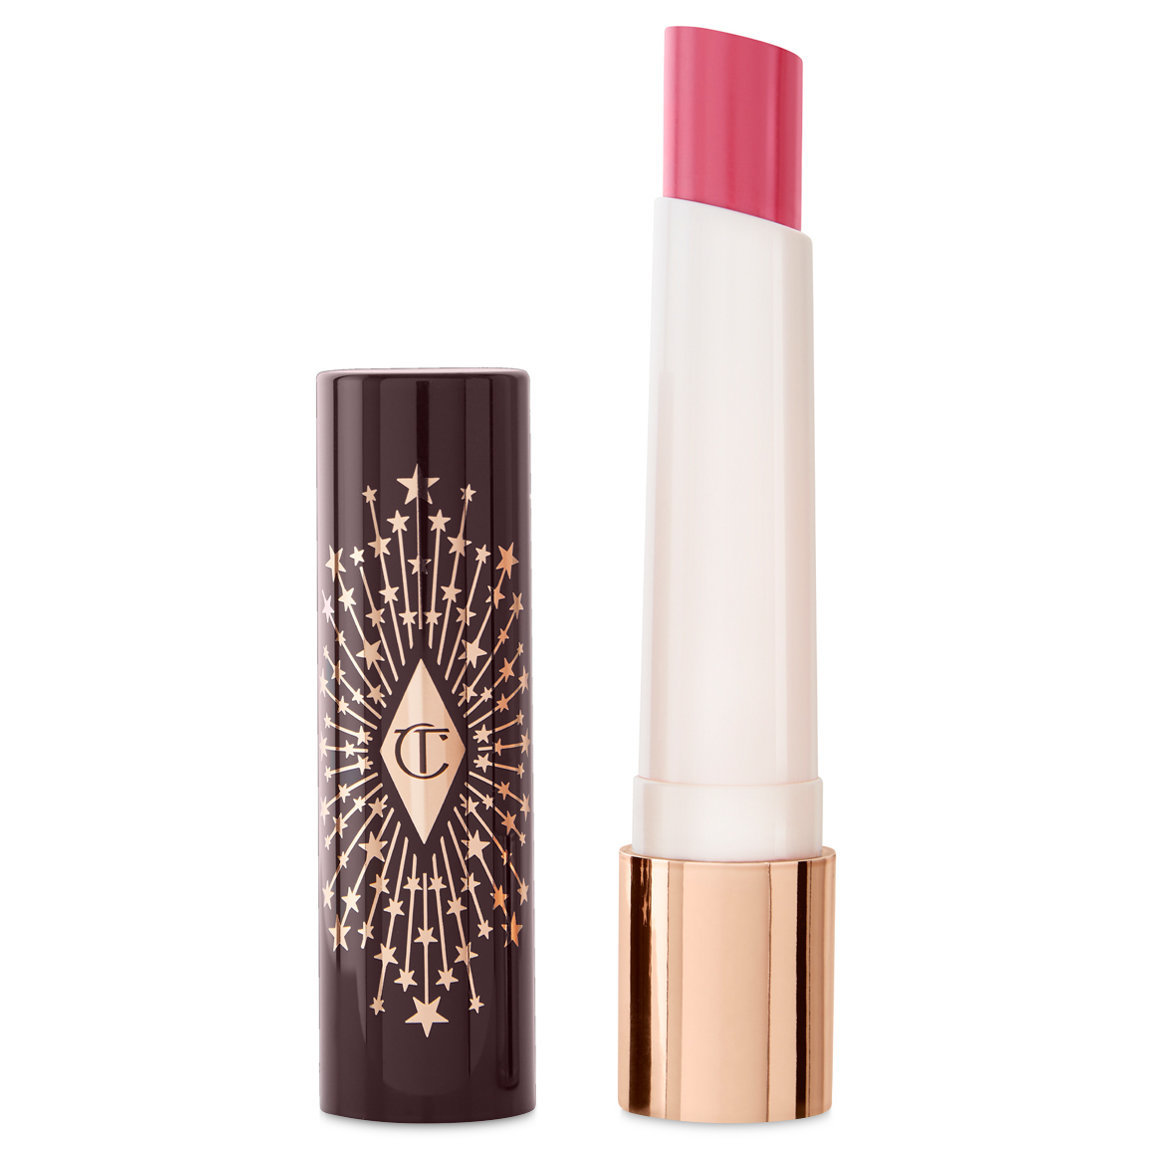 Charlotte Tilbury Hyaluronic Happikiss Crystal Happikiss alternative view 1.